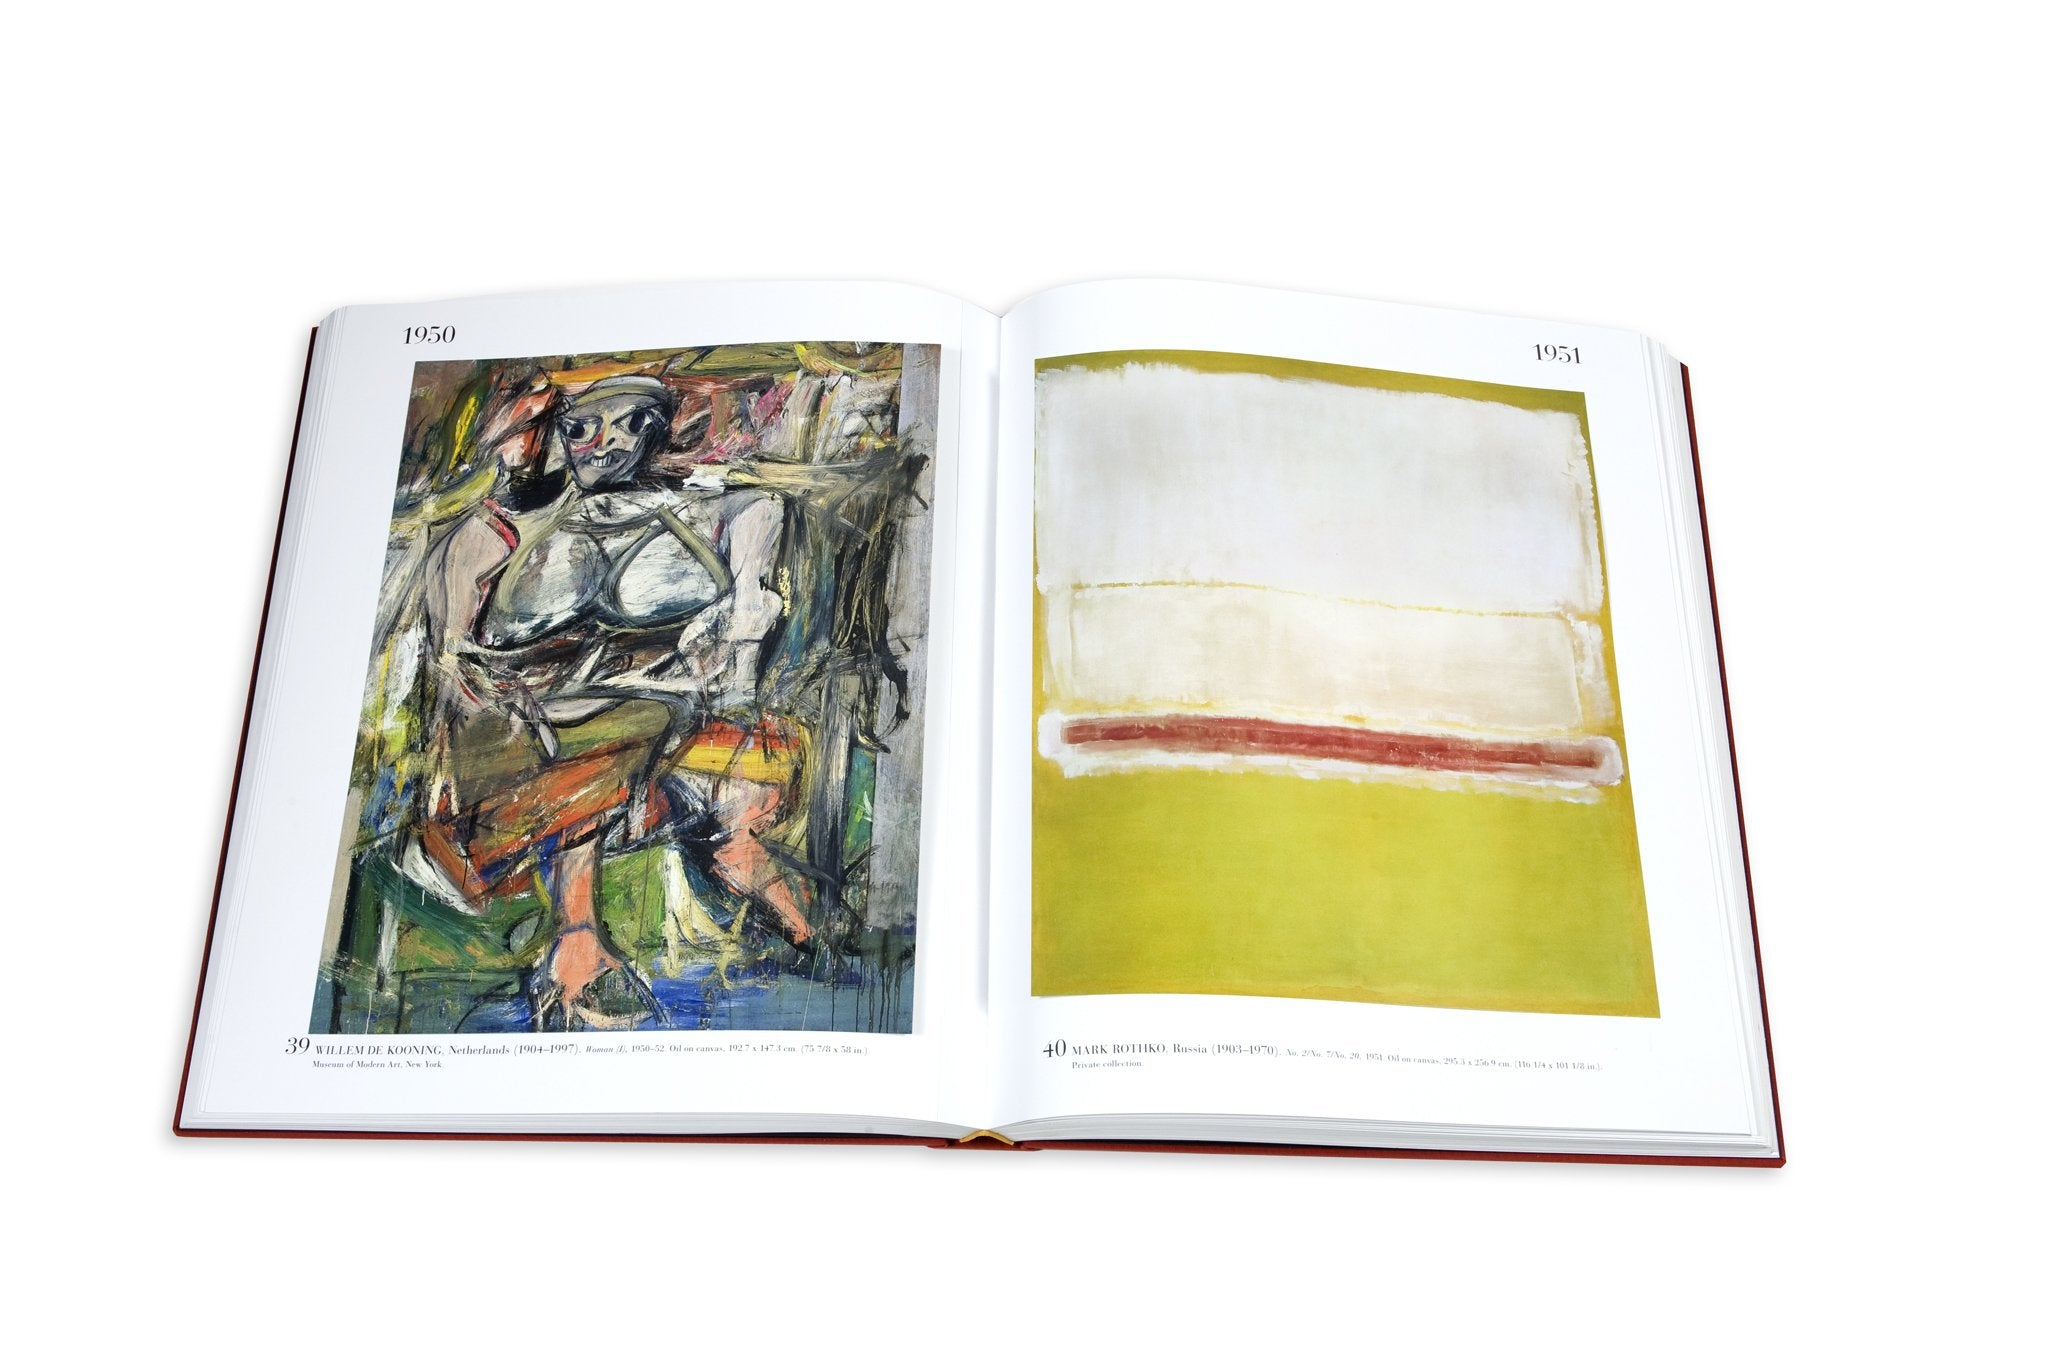 Assouline Books The Impossible Collection of Art